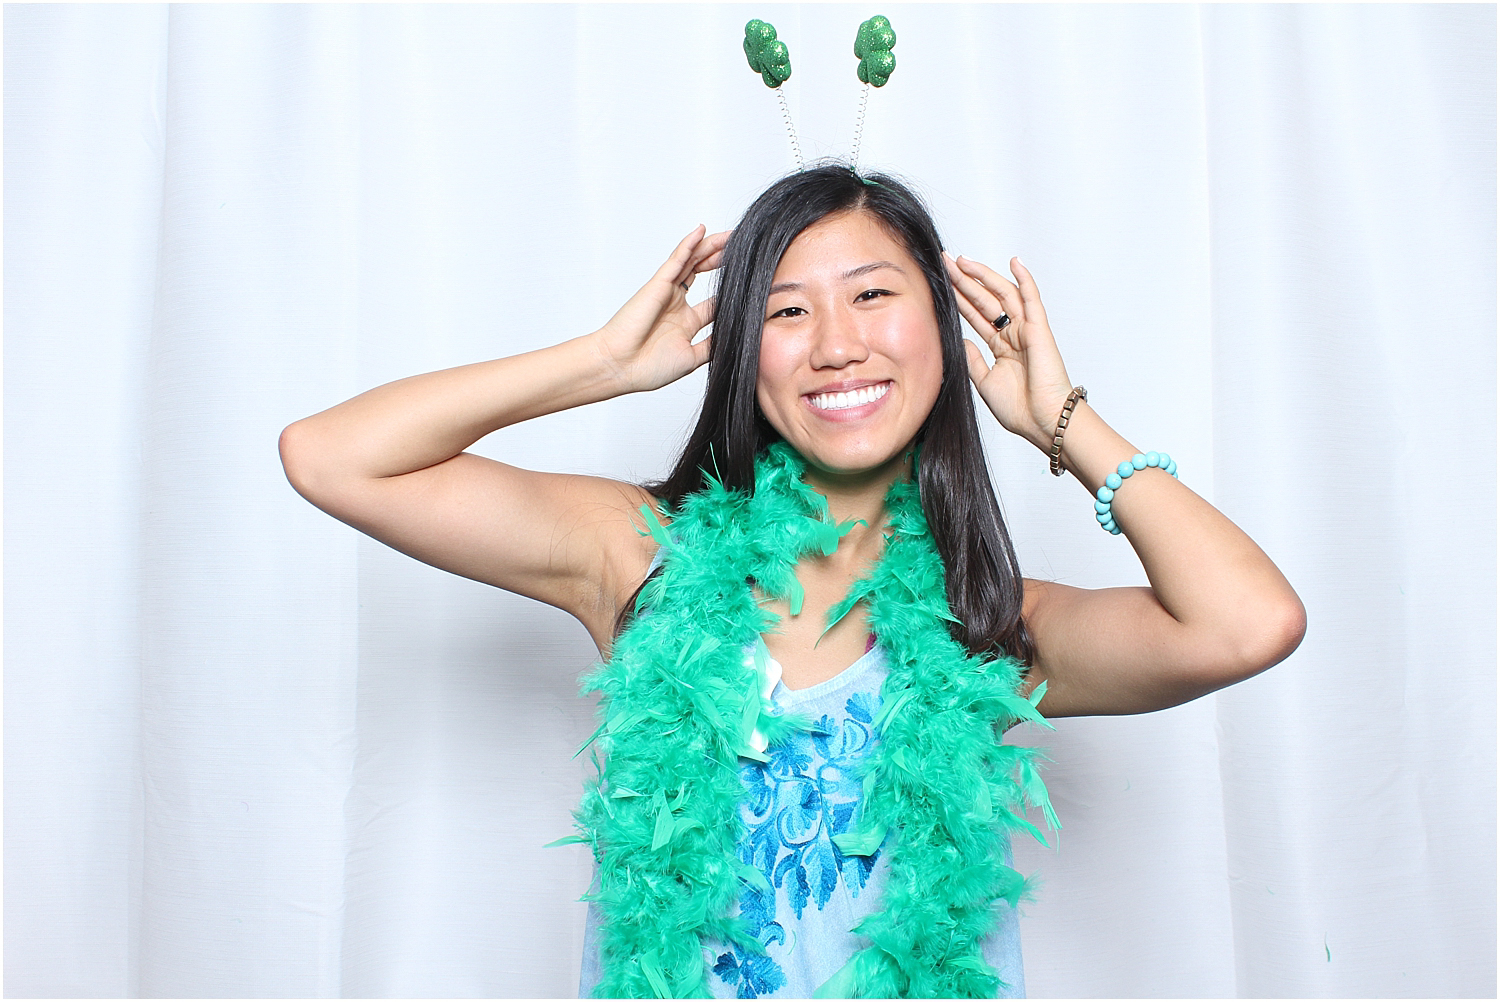 Austin Photo Booth - Kappa Delta Bid Day-6.jpg